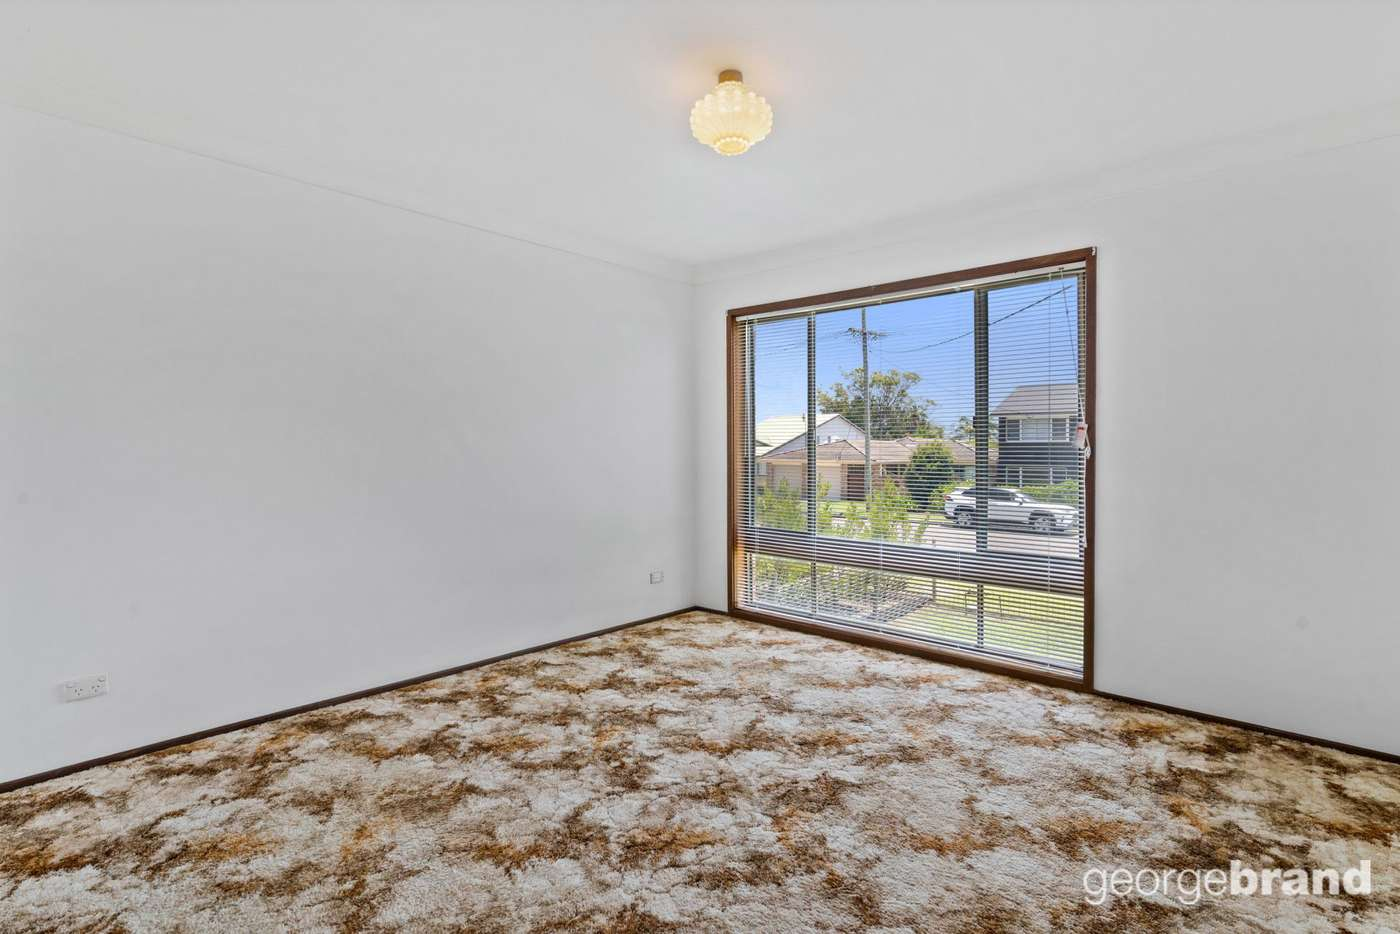 Fifth view of Homely house listing, 12 Lord Street, Shelly Beach NSW 2261